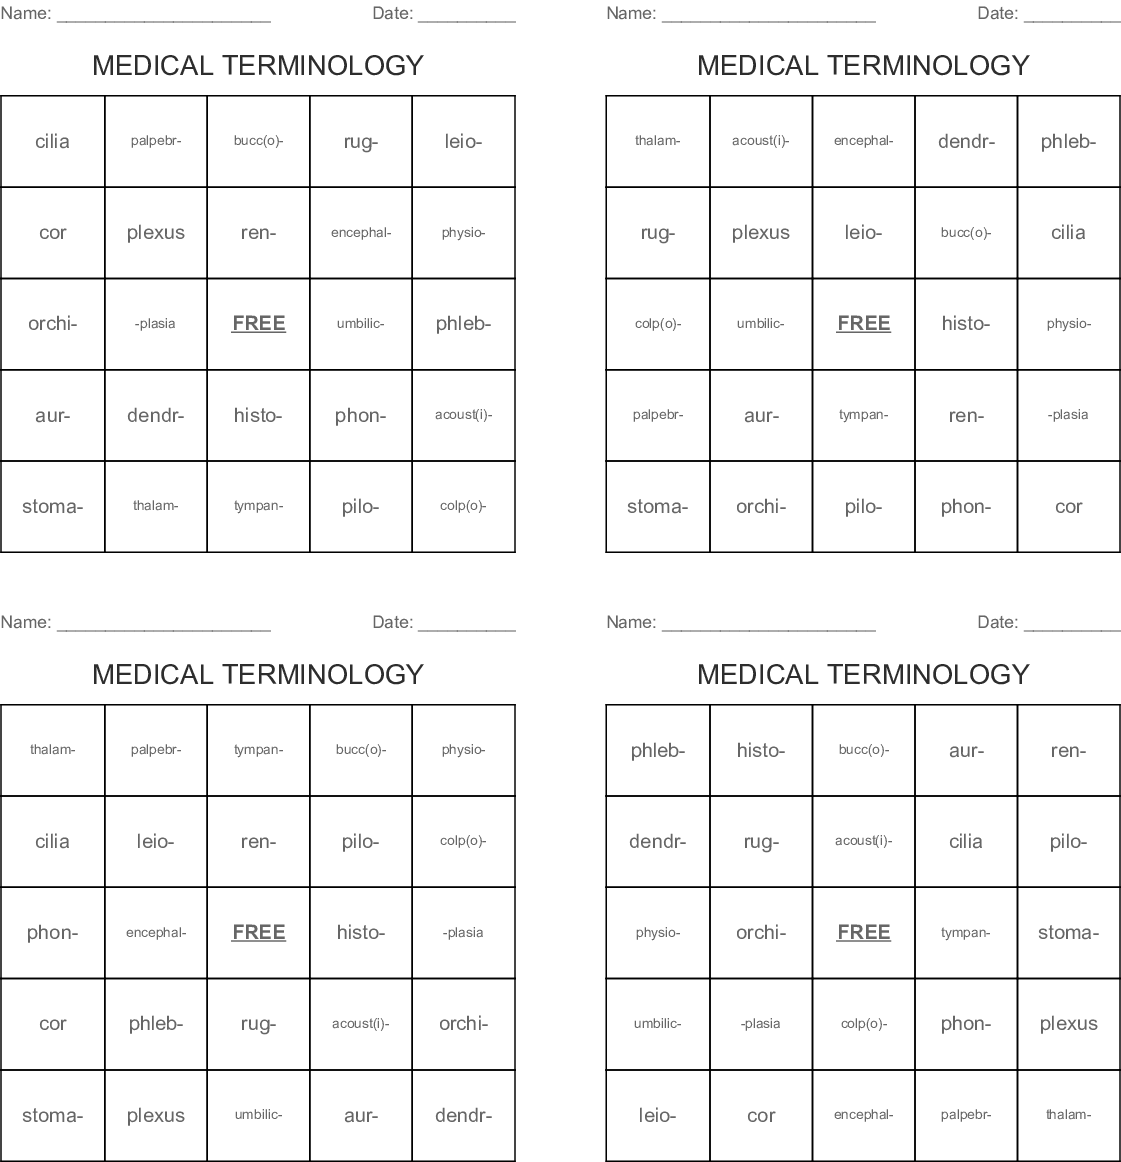 Medical Terminology Lesson 6 Worksheet